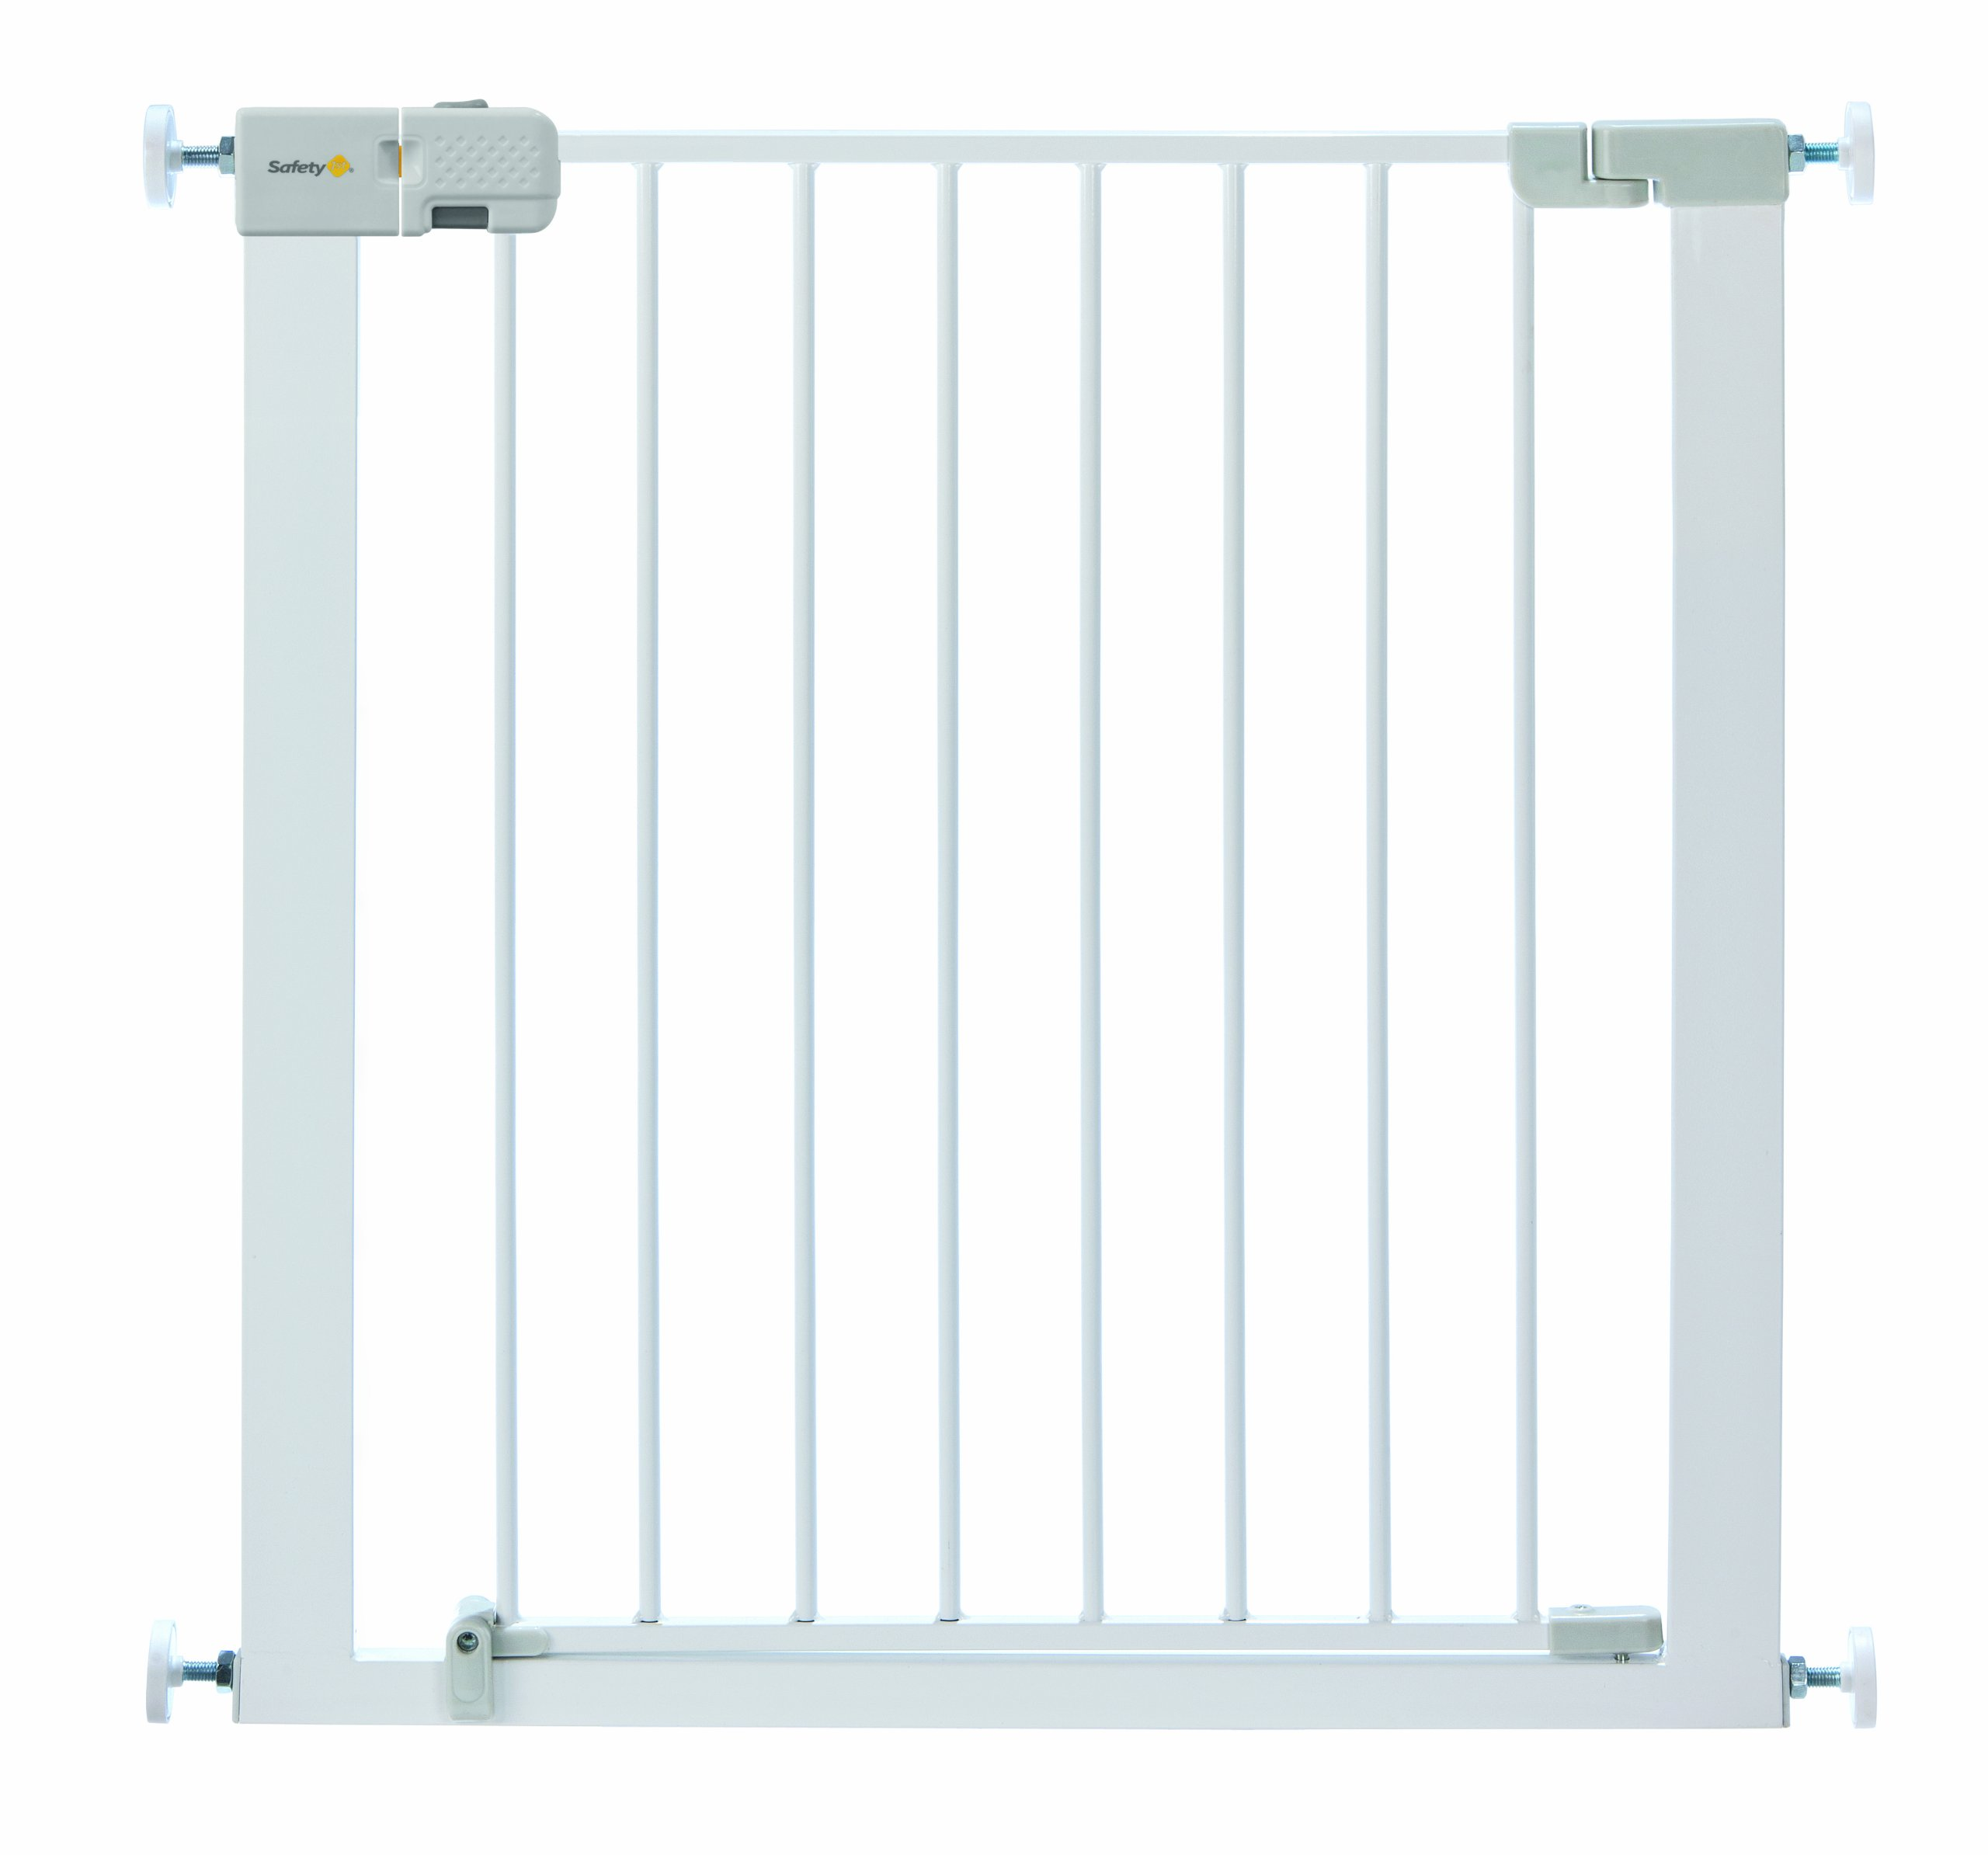 Safety 1st Simply Close Pressure Fit Metal Gate, White Safety 1st Adjusts to fit openings from 73 cm to 80 cm Extends up to 136 cm with separately available extensions Strong steel frame with four-point pressure fit 1